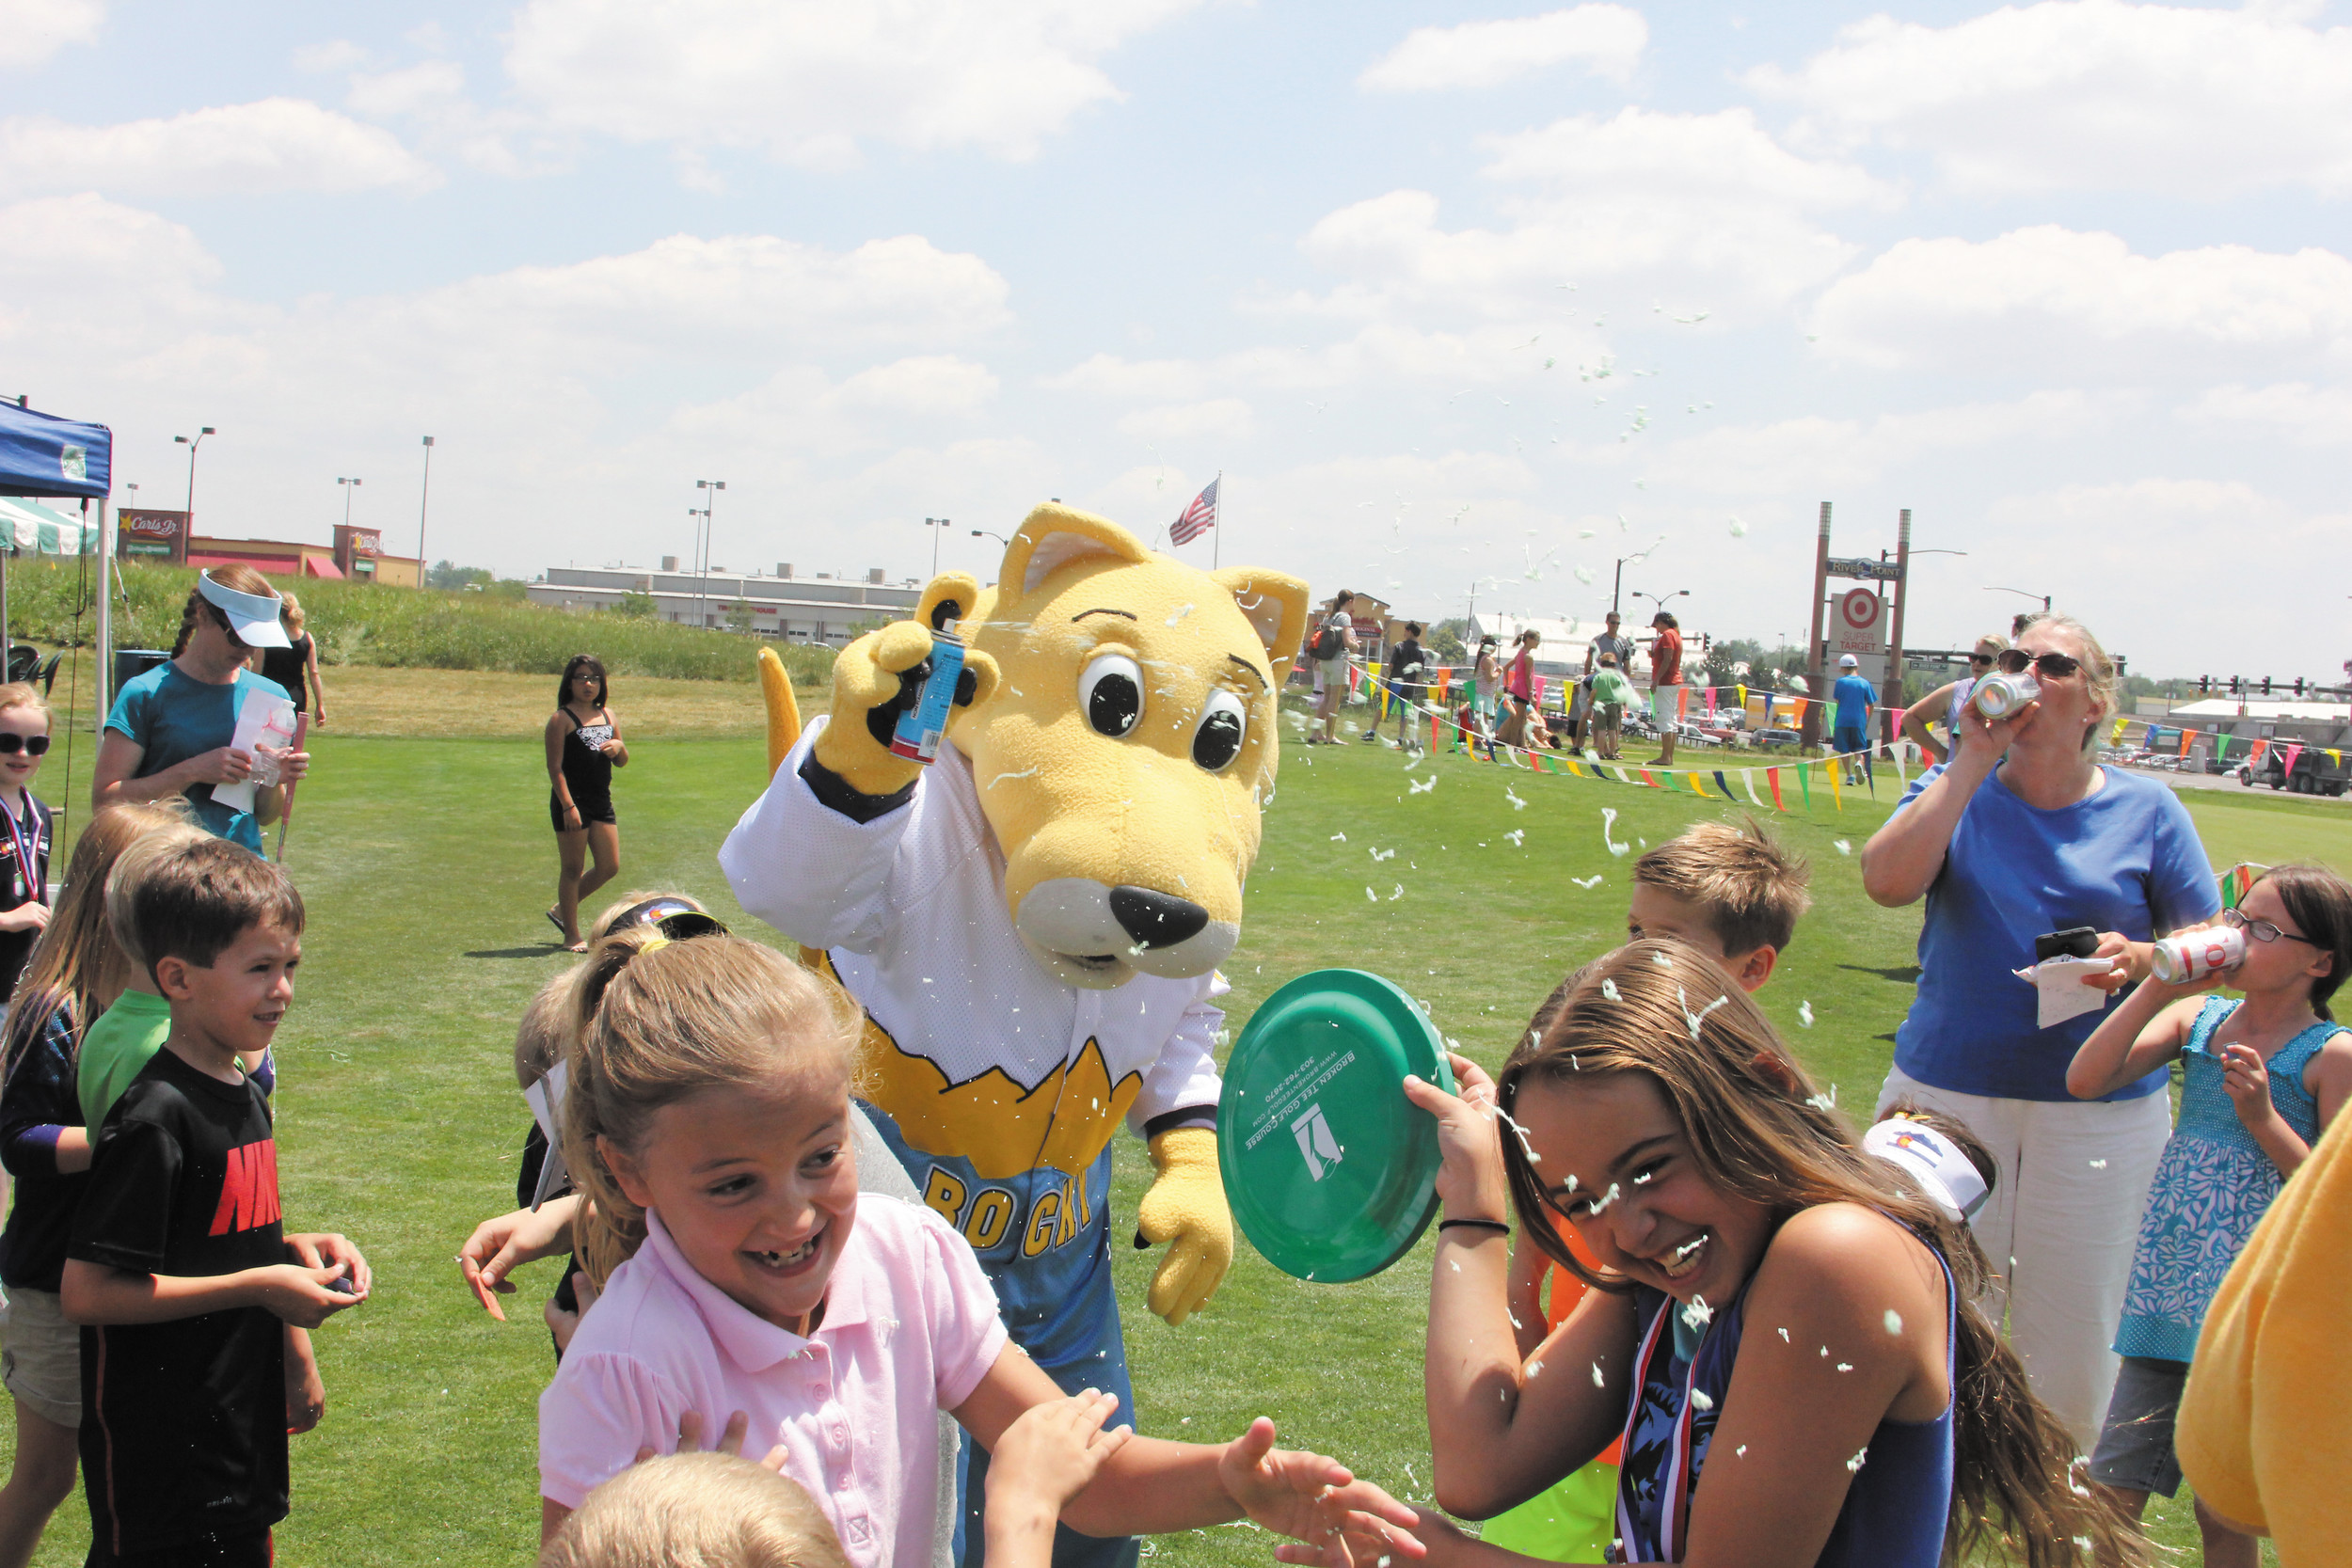 Rocky, the Denver Nuggets mascot, sprays boys and girls with Silly String as he and the children take part in the July 2 activities and barbecue wrapping up the Hole-N-One Youth Golf Program. More than 400 boys and girls attended the Broken Tee at Englewood Golf Course program that marked its13th year teaching golf fundamentals to 7- to 15-year-olds.